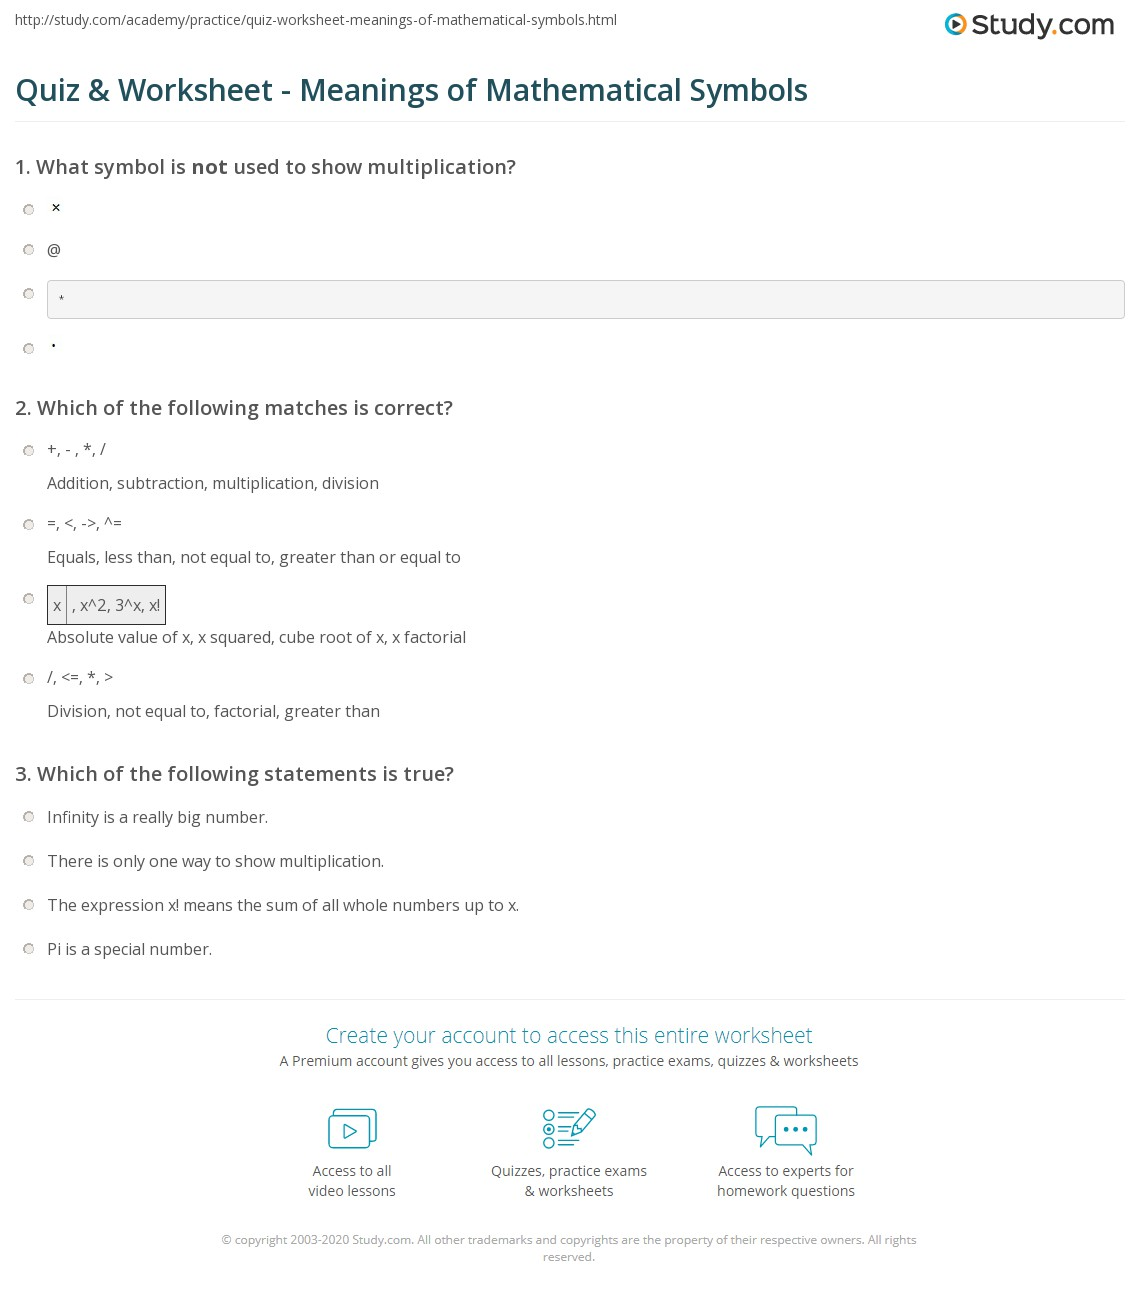 quiz & worksheet - meanings of mathematical symbols | study